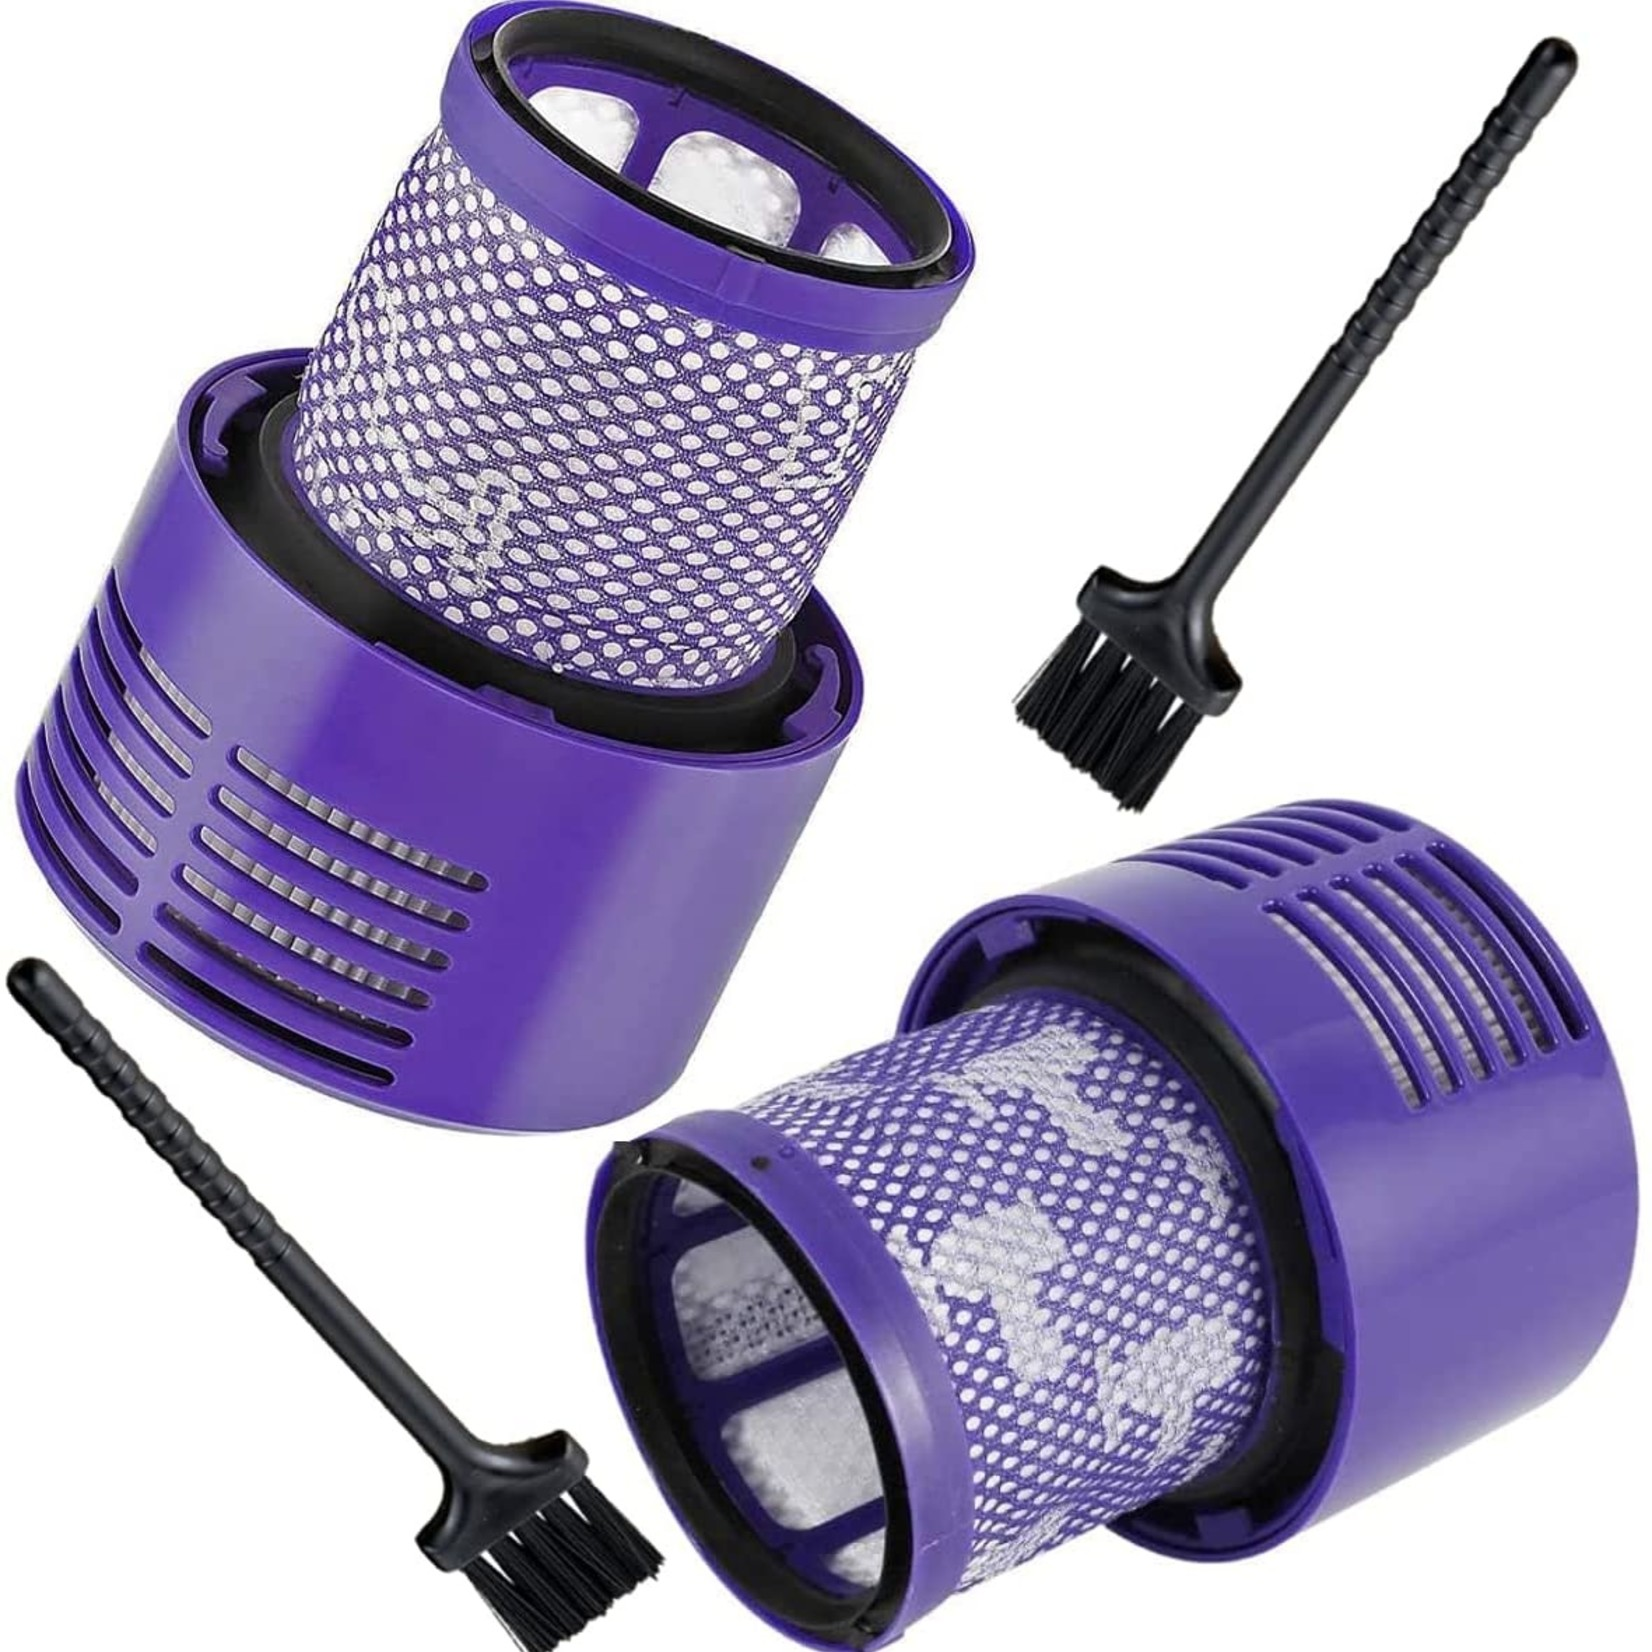 Washable Replacement Filter (2 Pack) with 2 Pcs Cleaning Brush for Dyson V10 Cyclone Series